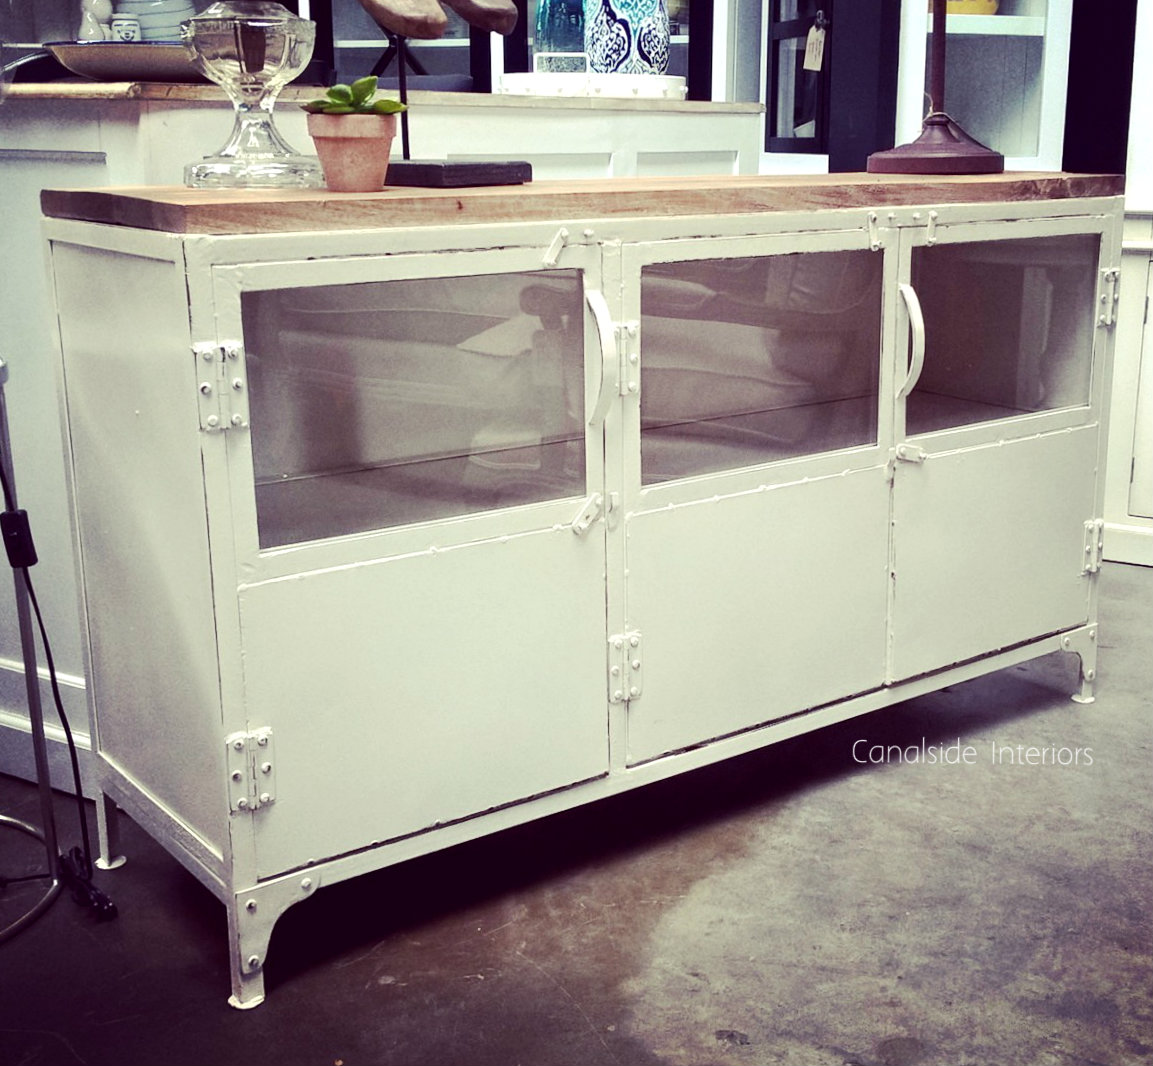 Foundry 3 Door TV Sideboard with Wooden Top Distressed White  INDUSTRIAL RUSTIC Style, CAFE FURNITURE, LIVING Room, LIVING TV Media & Storage, CAFE FURNITURE Storage, TABLES Sideboards & Buffets, STORAGE, STORAGE Sideboards & Buffets